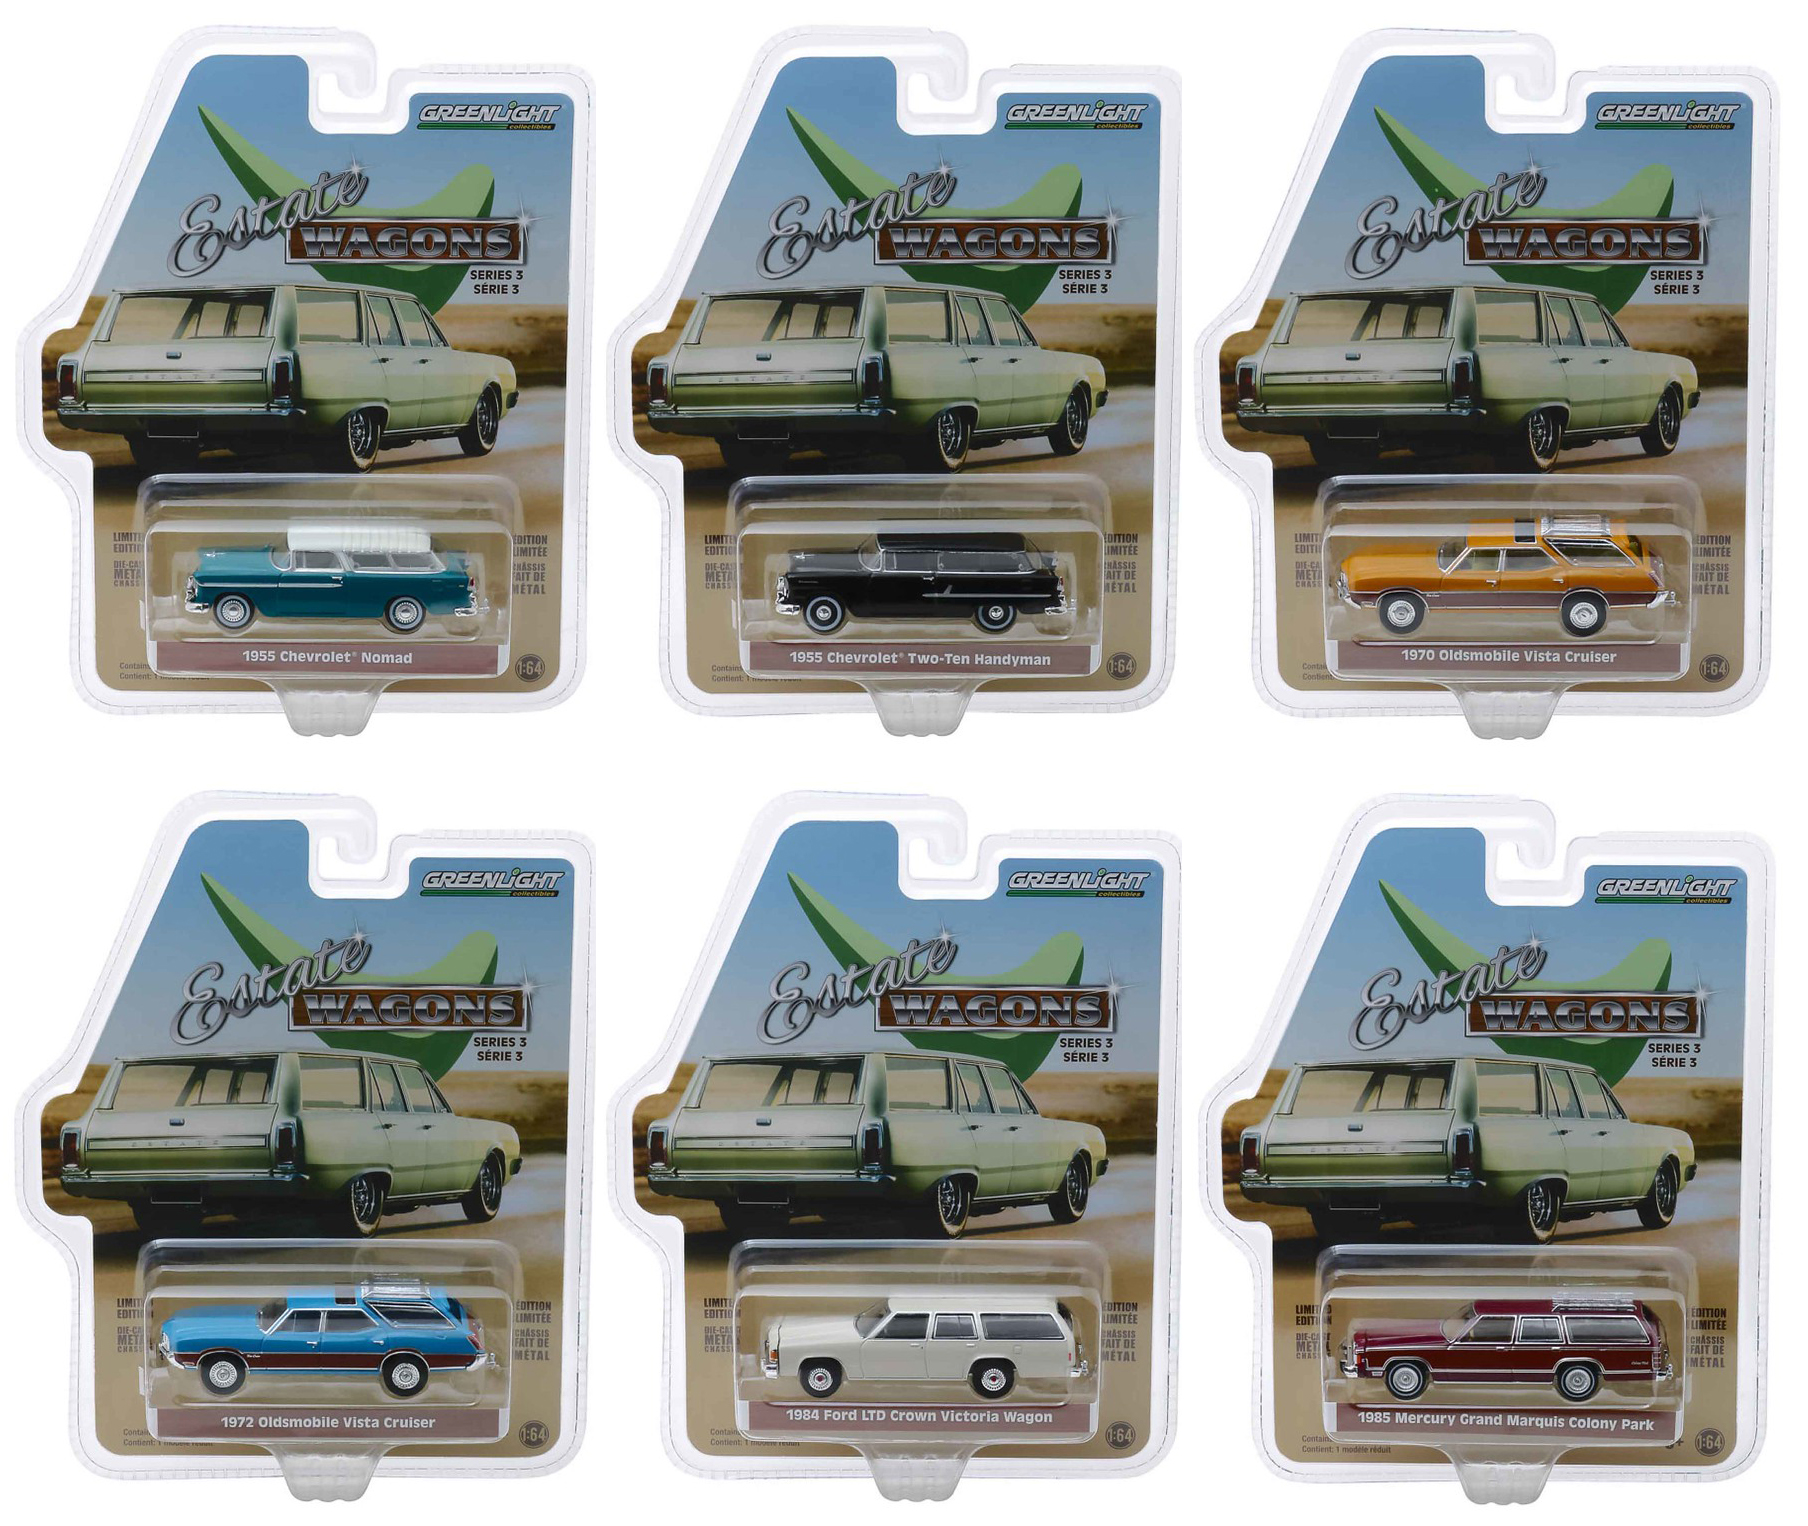 Estate Wagons Series 3 Set of 6 Cars 1/64 Diecast Models by Greenlight